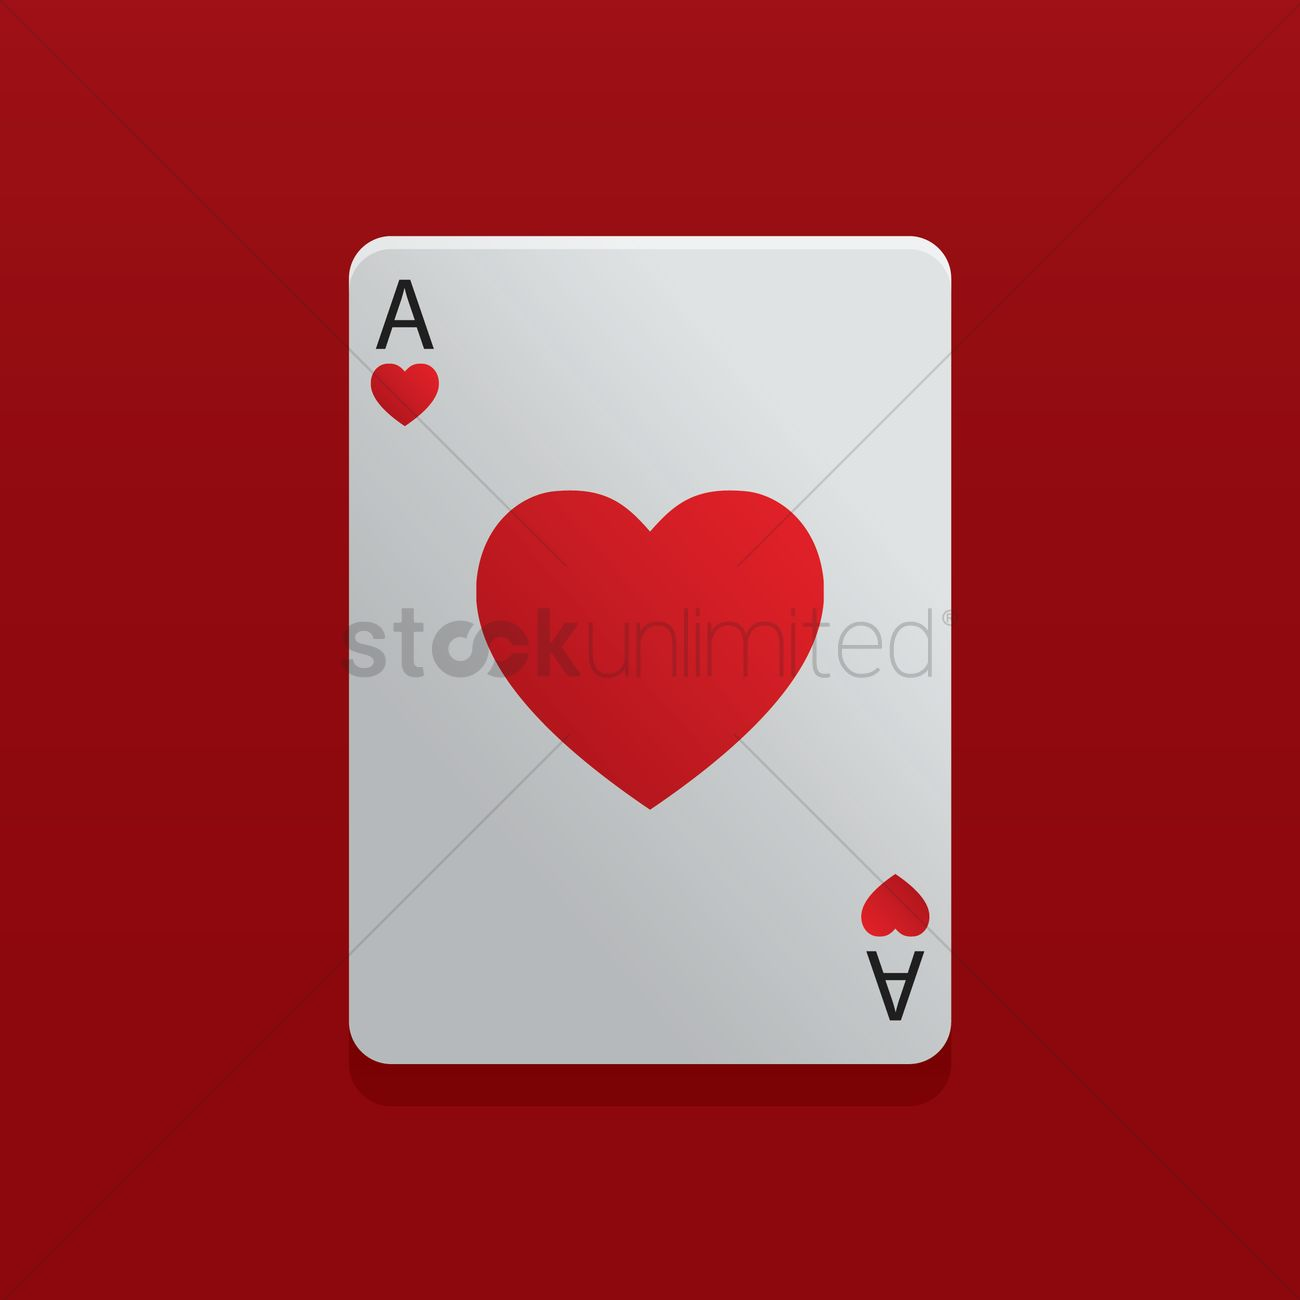 1300x1300 Ace Of Heart Poker Card Vector Image